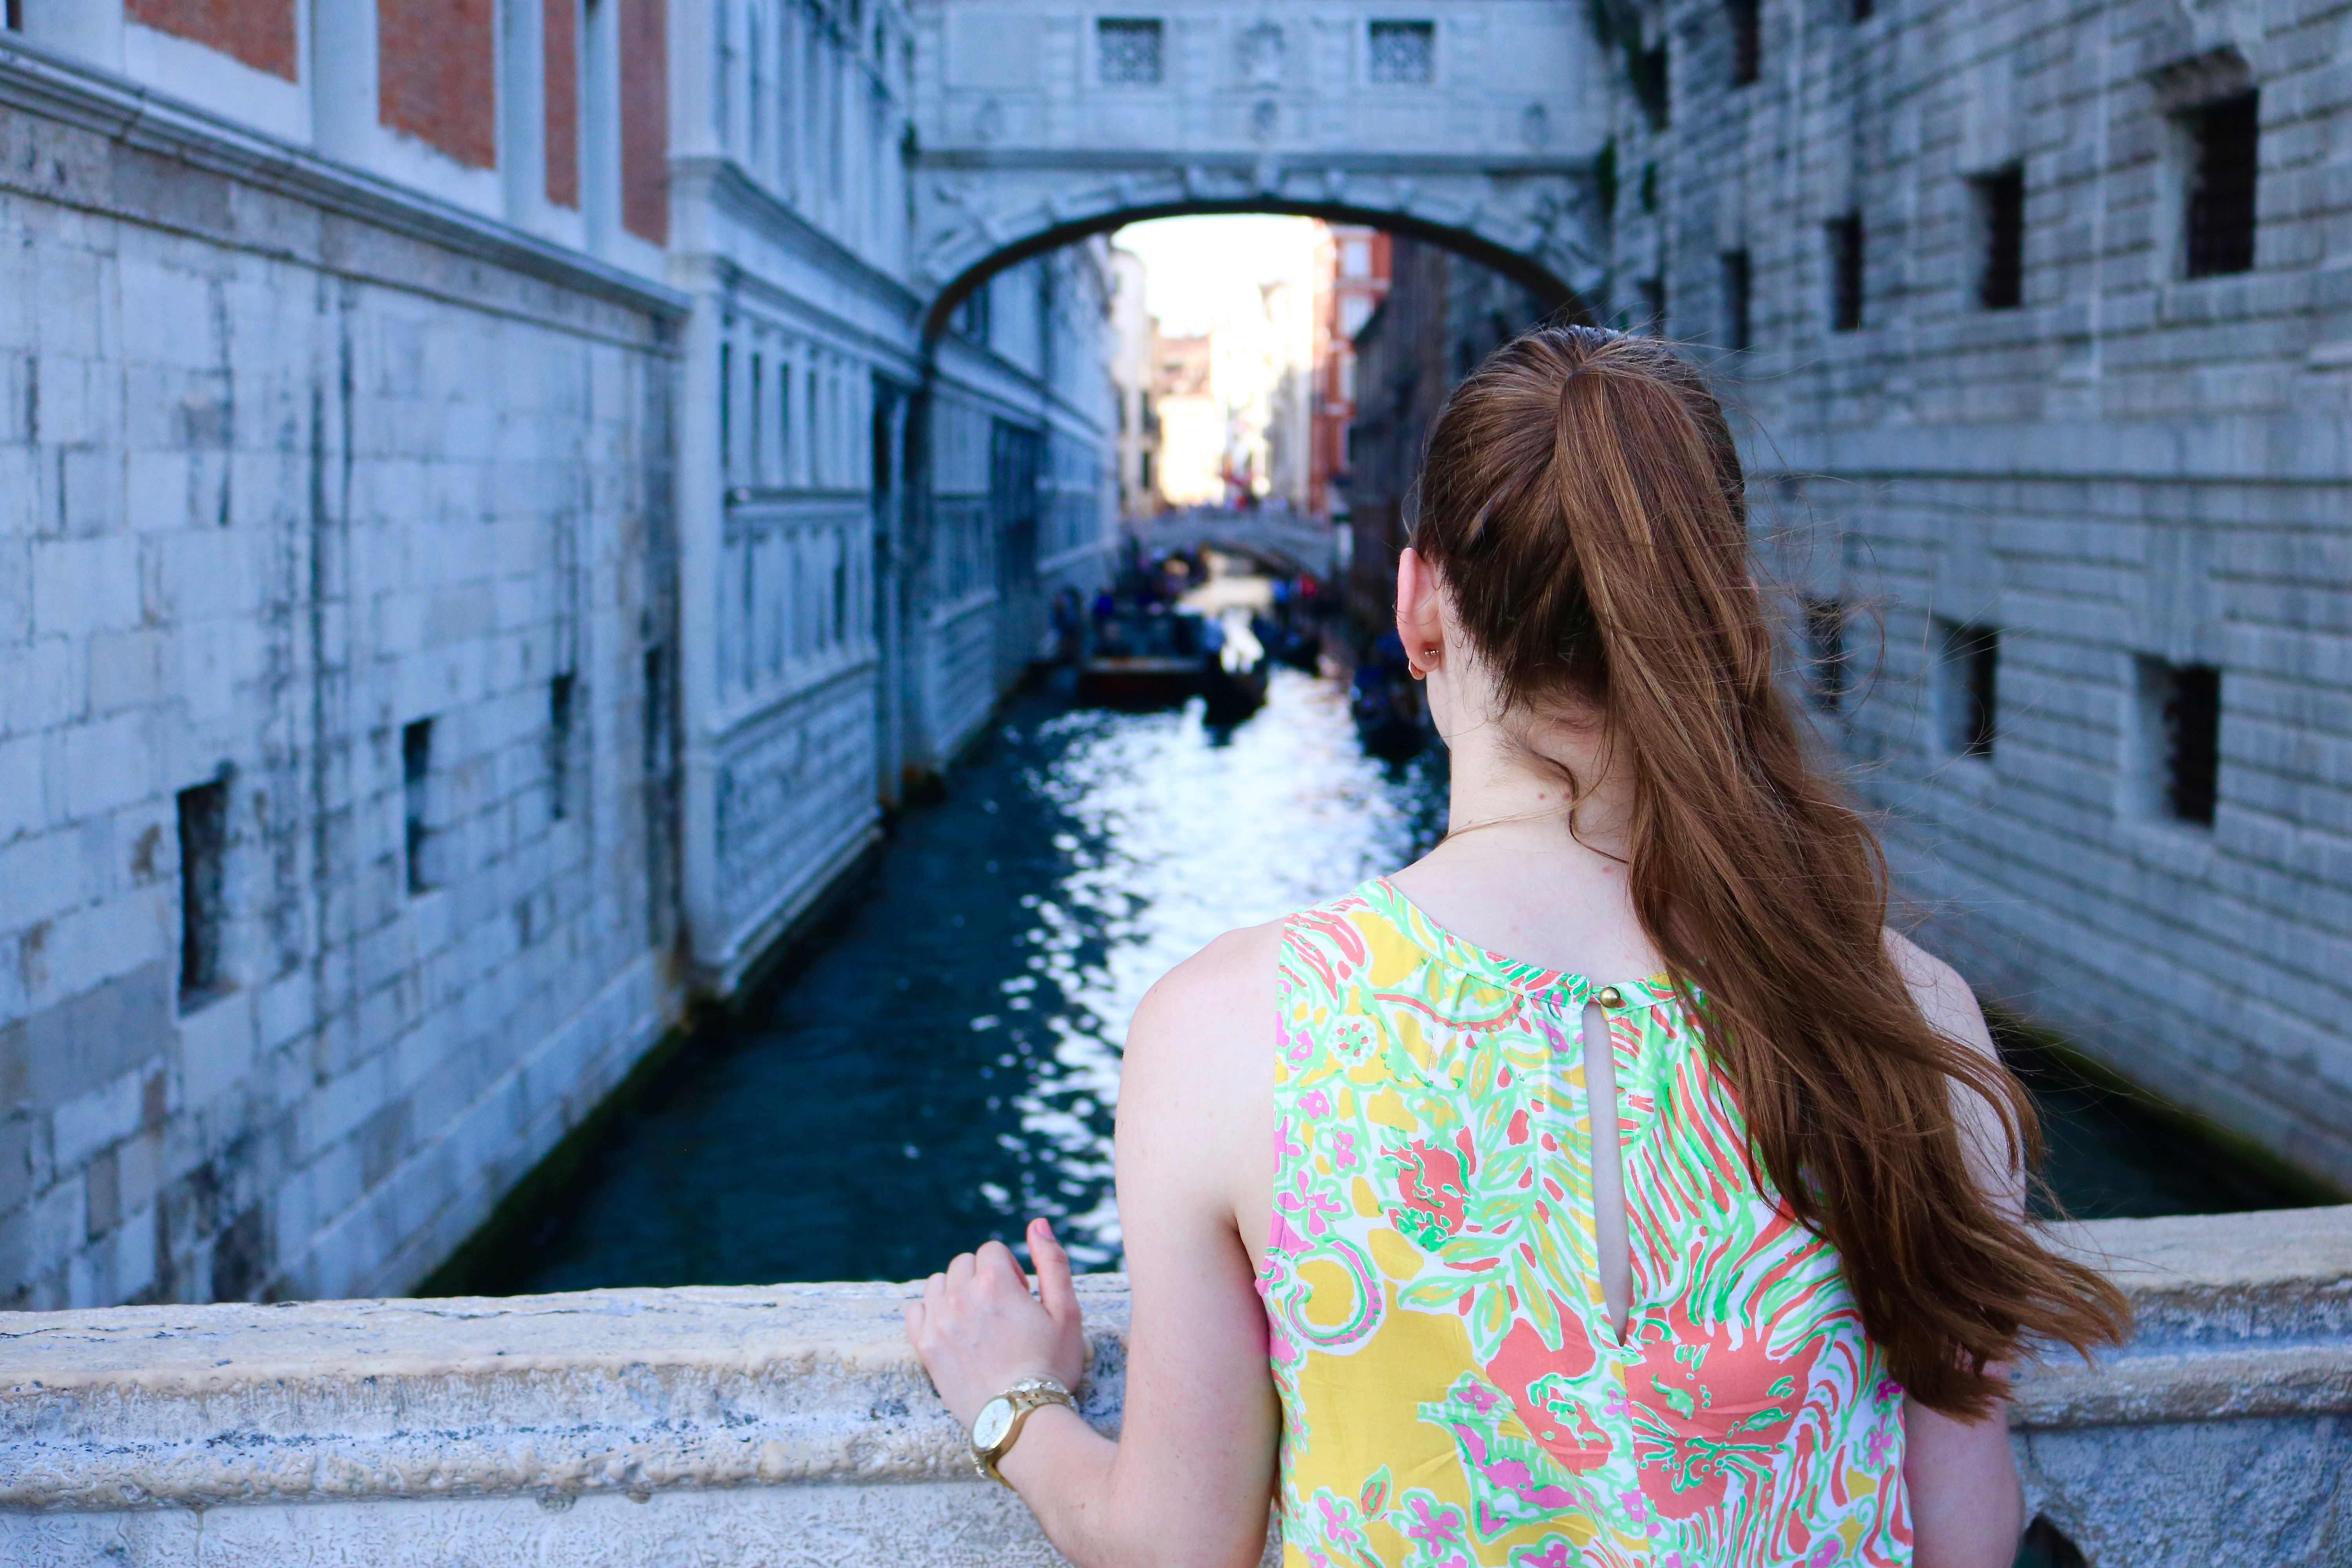 Venice Photo Diary 2016 | Bowtiful Life www.bowtifullife.com 7